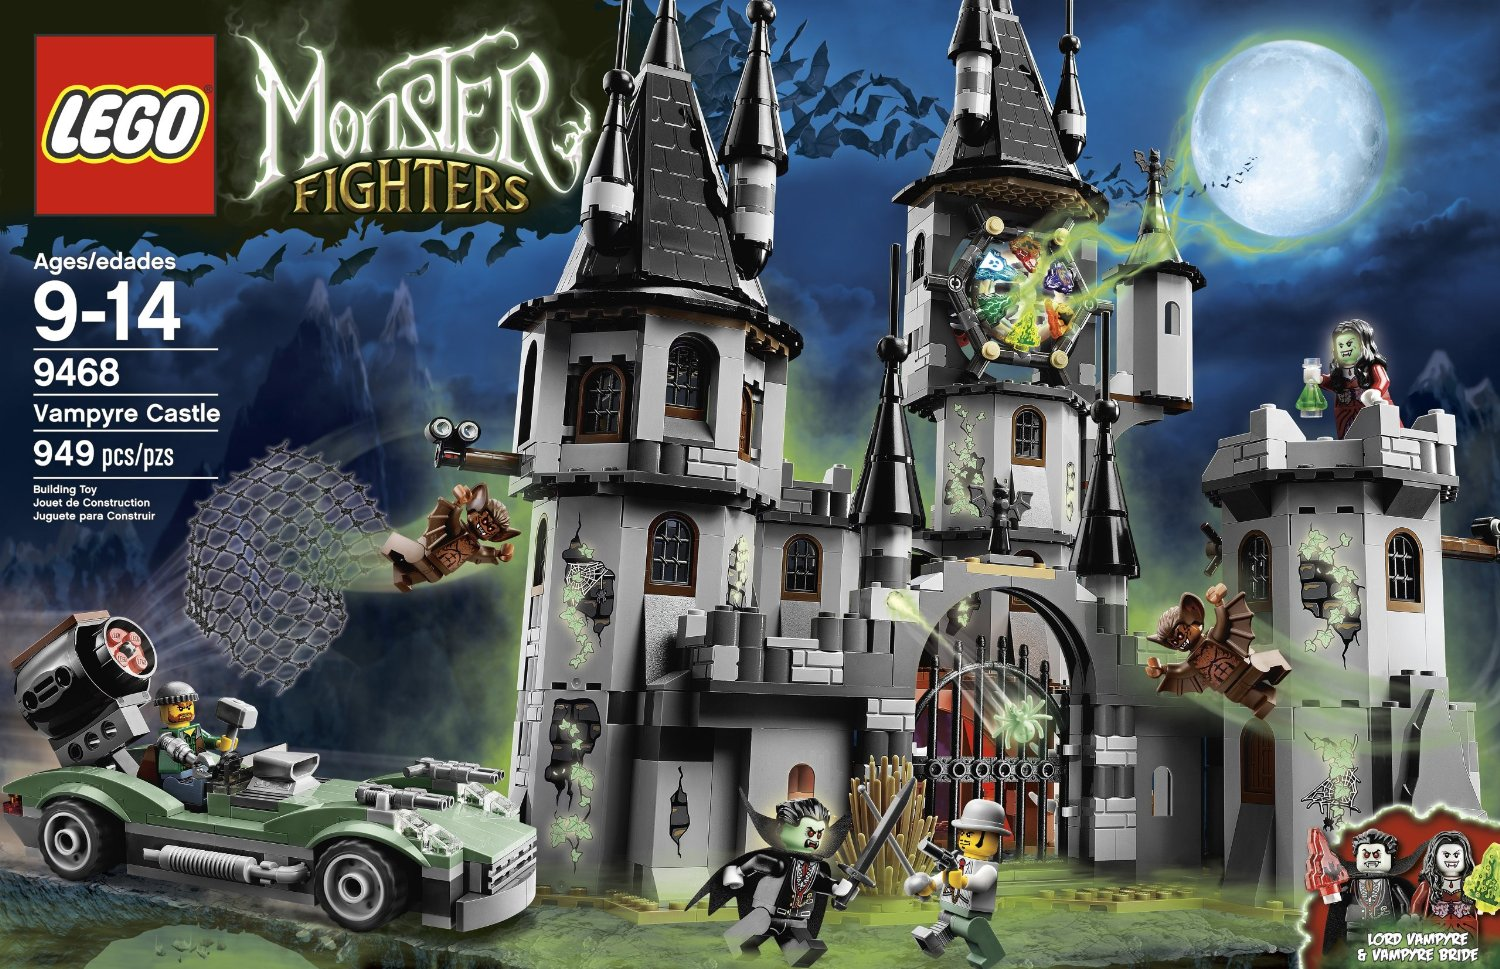 LEGO Monster Fighters 9468 Vampyre Castle, LEGO Monster Fighters